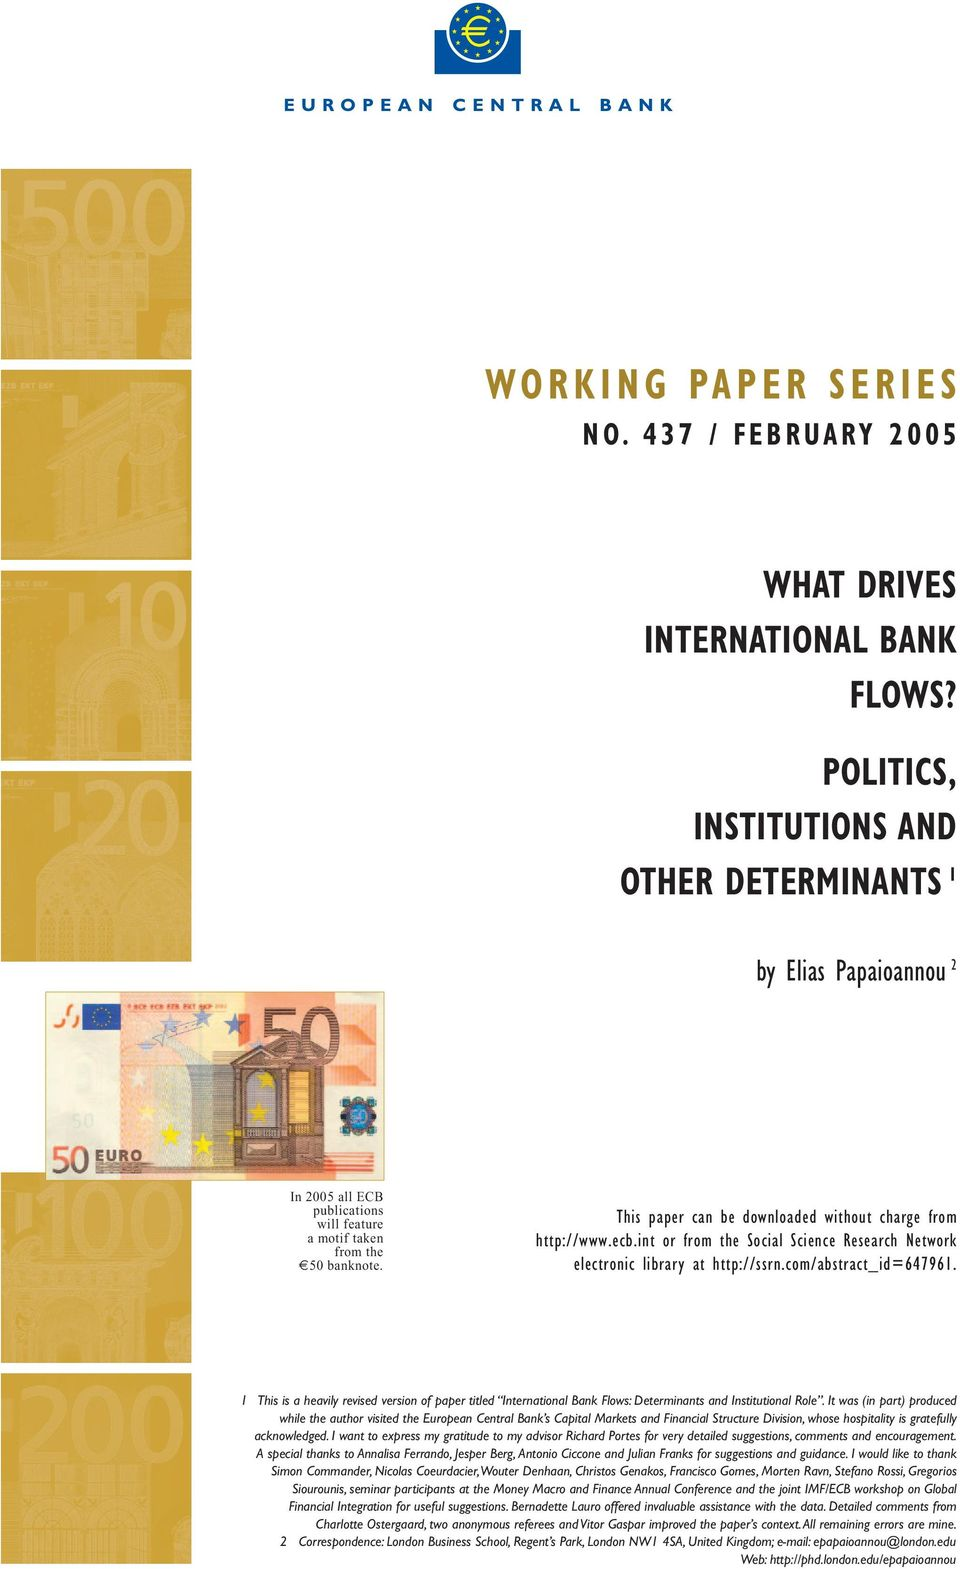 This paper can be downloaded without charge from http://www.ecb.int or from the Social Science Research Network electronic library at http://ssrn.com/abstract_id=647961.